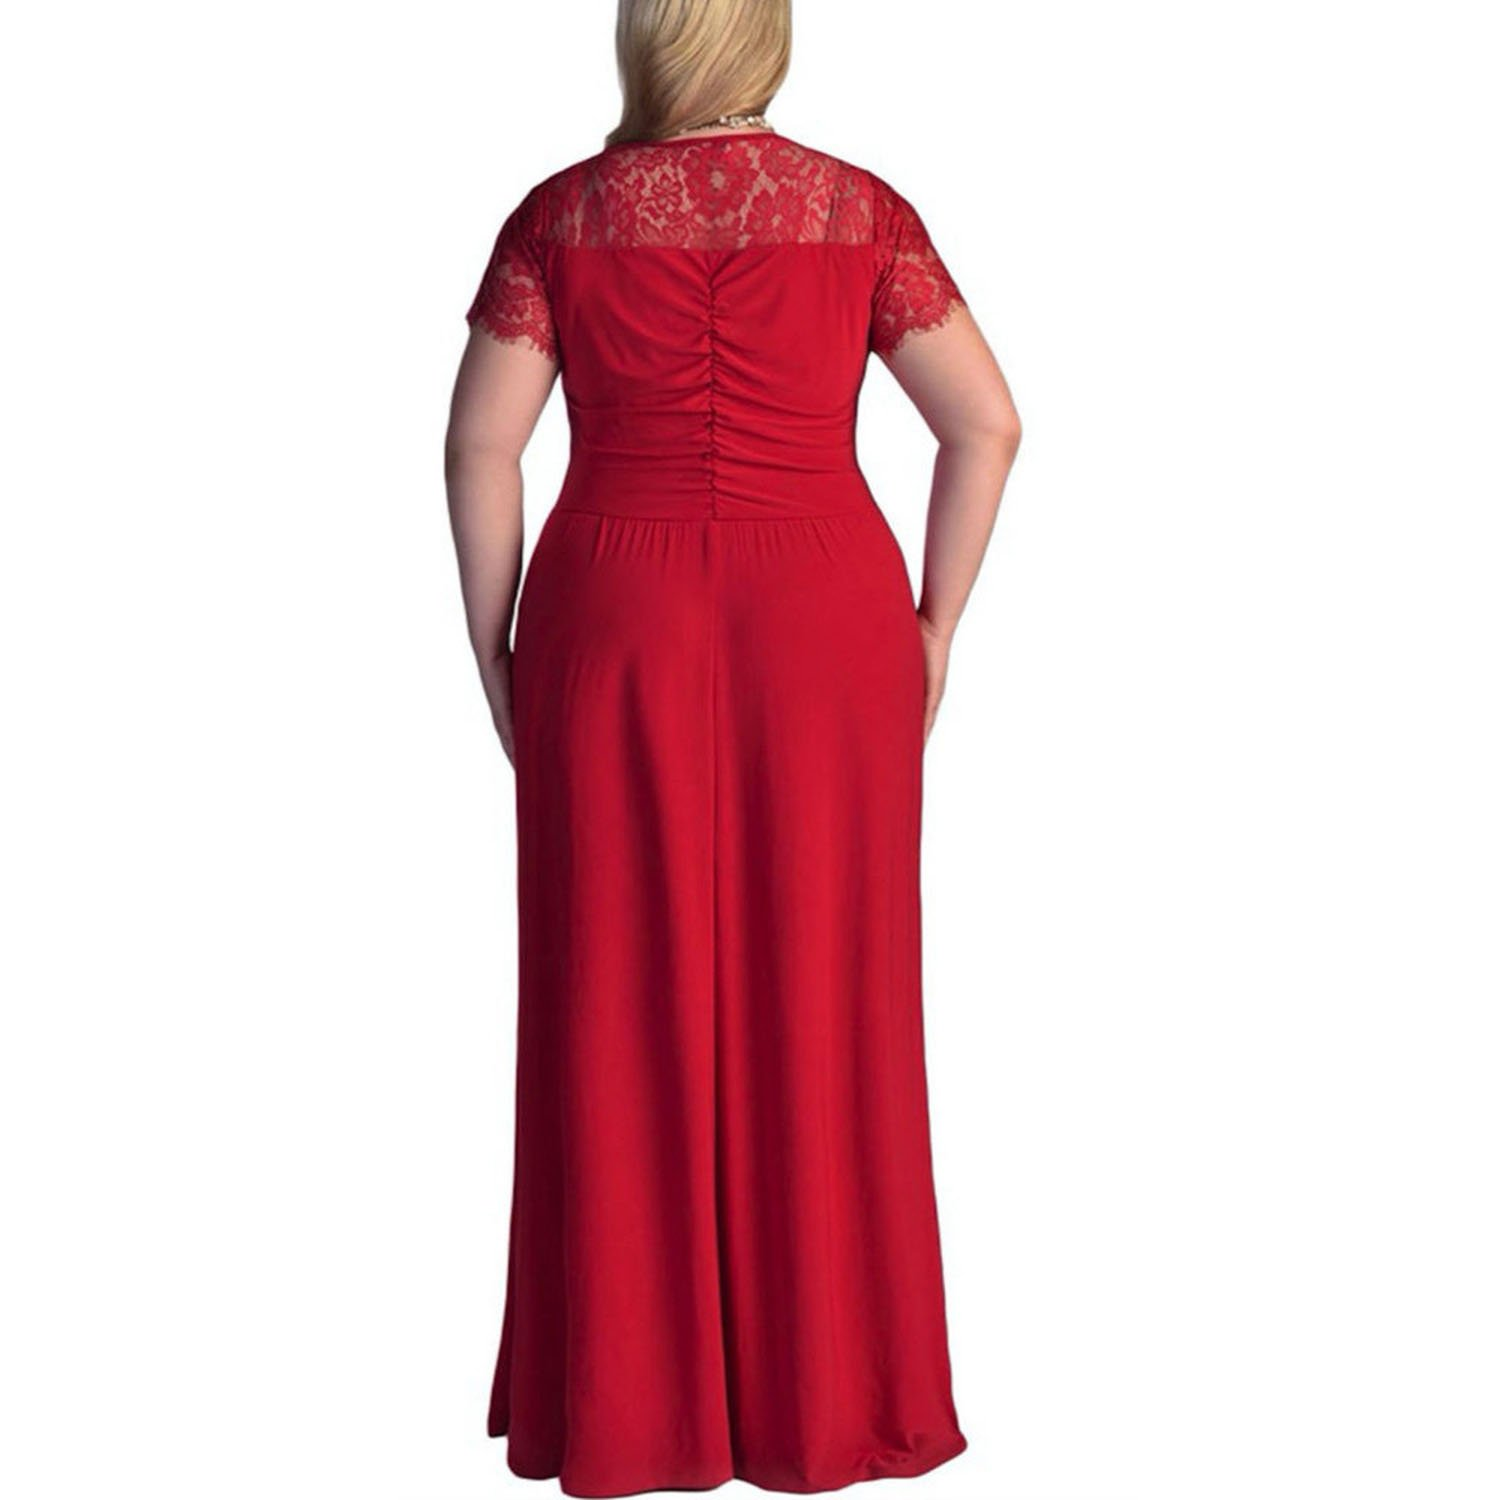 Vestidos Verano 2018 Women Plus Size Short Sleeves Cocktail Gown Long Dresses Beach Sundress N30, Red, L at Amazon Womens Clothing store: